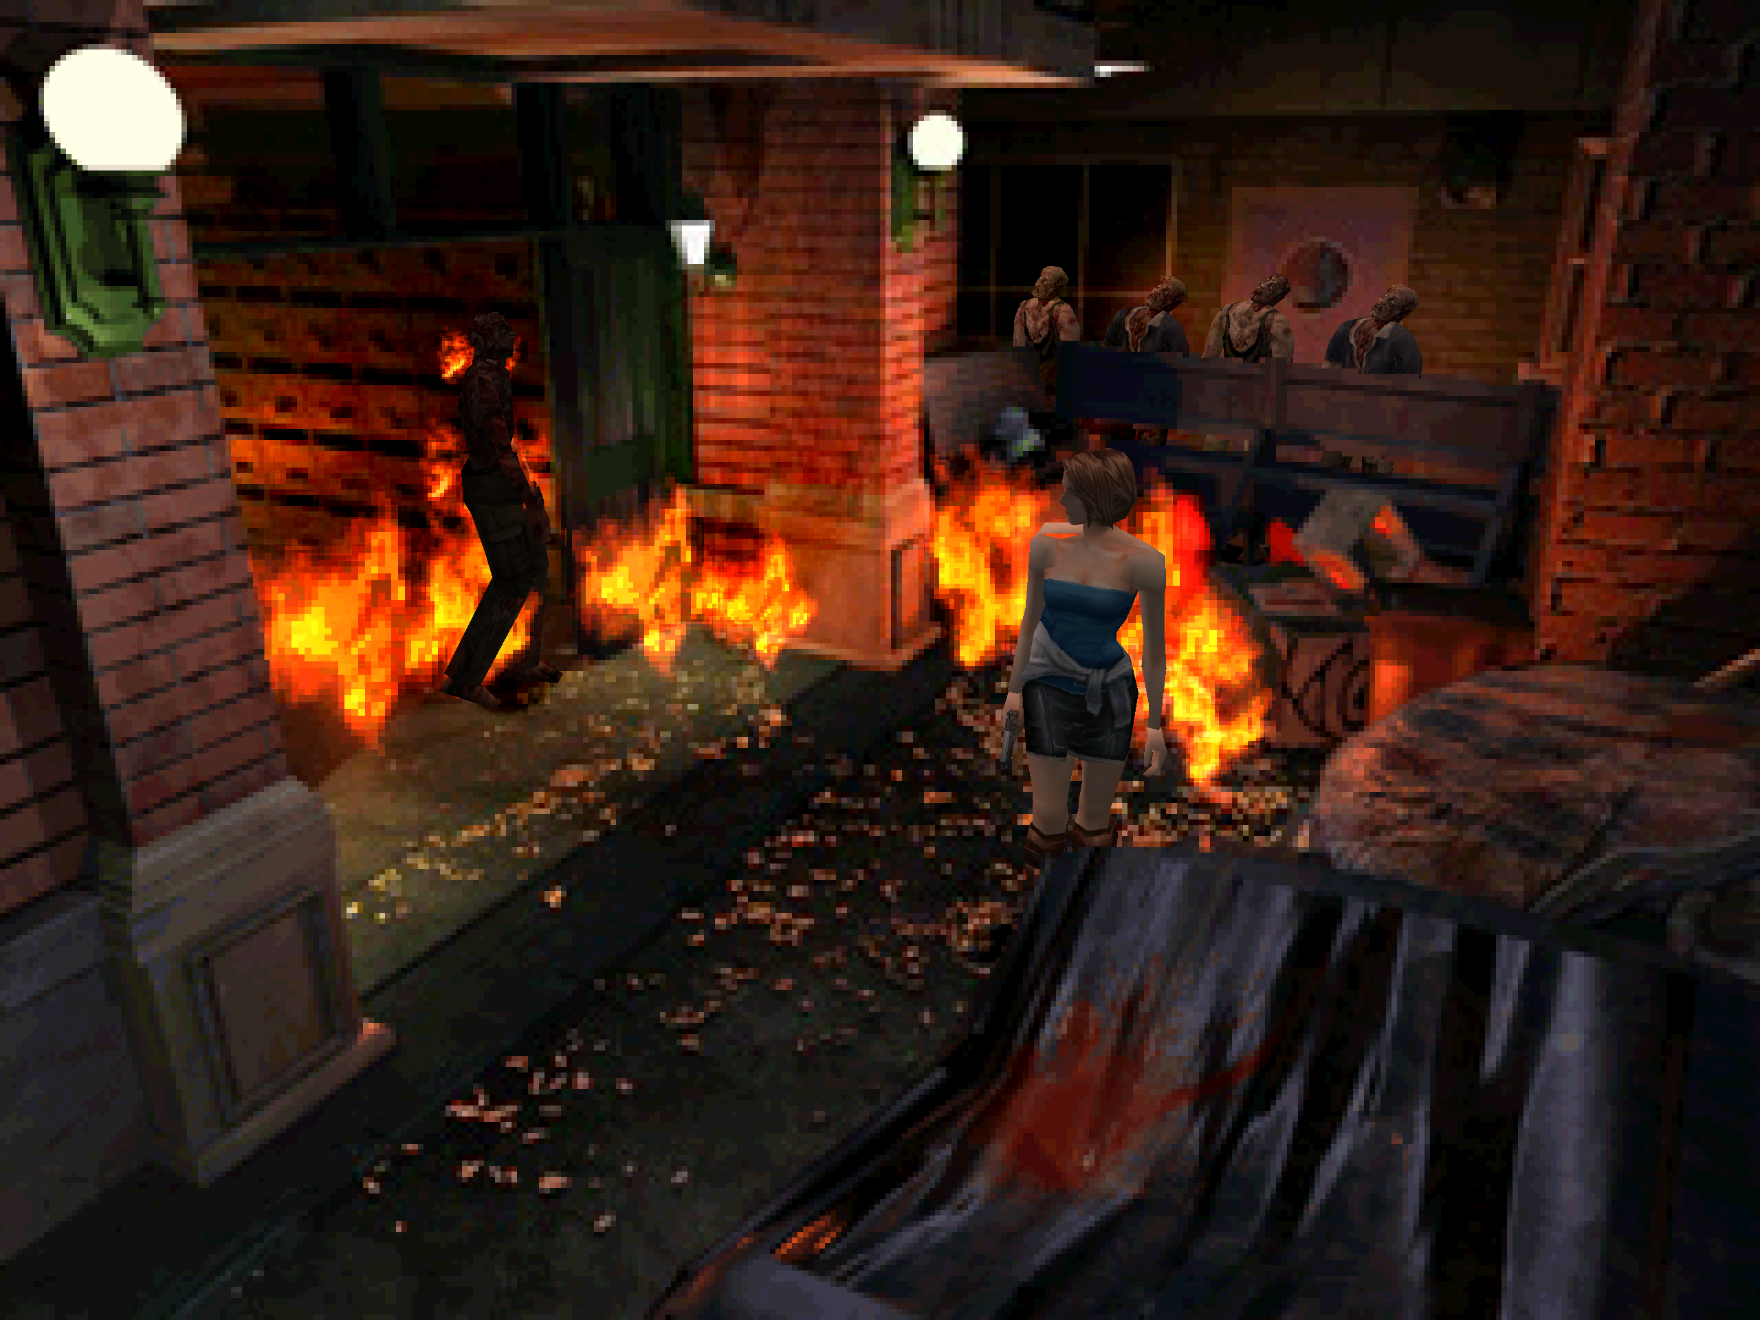 Beetle PSX HW] Resident Evil 3 - No Flames in PGXP Memory + CPU